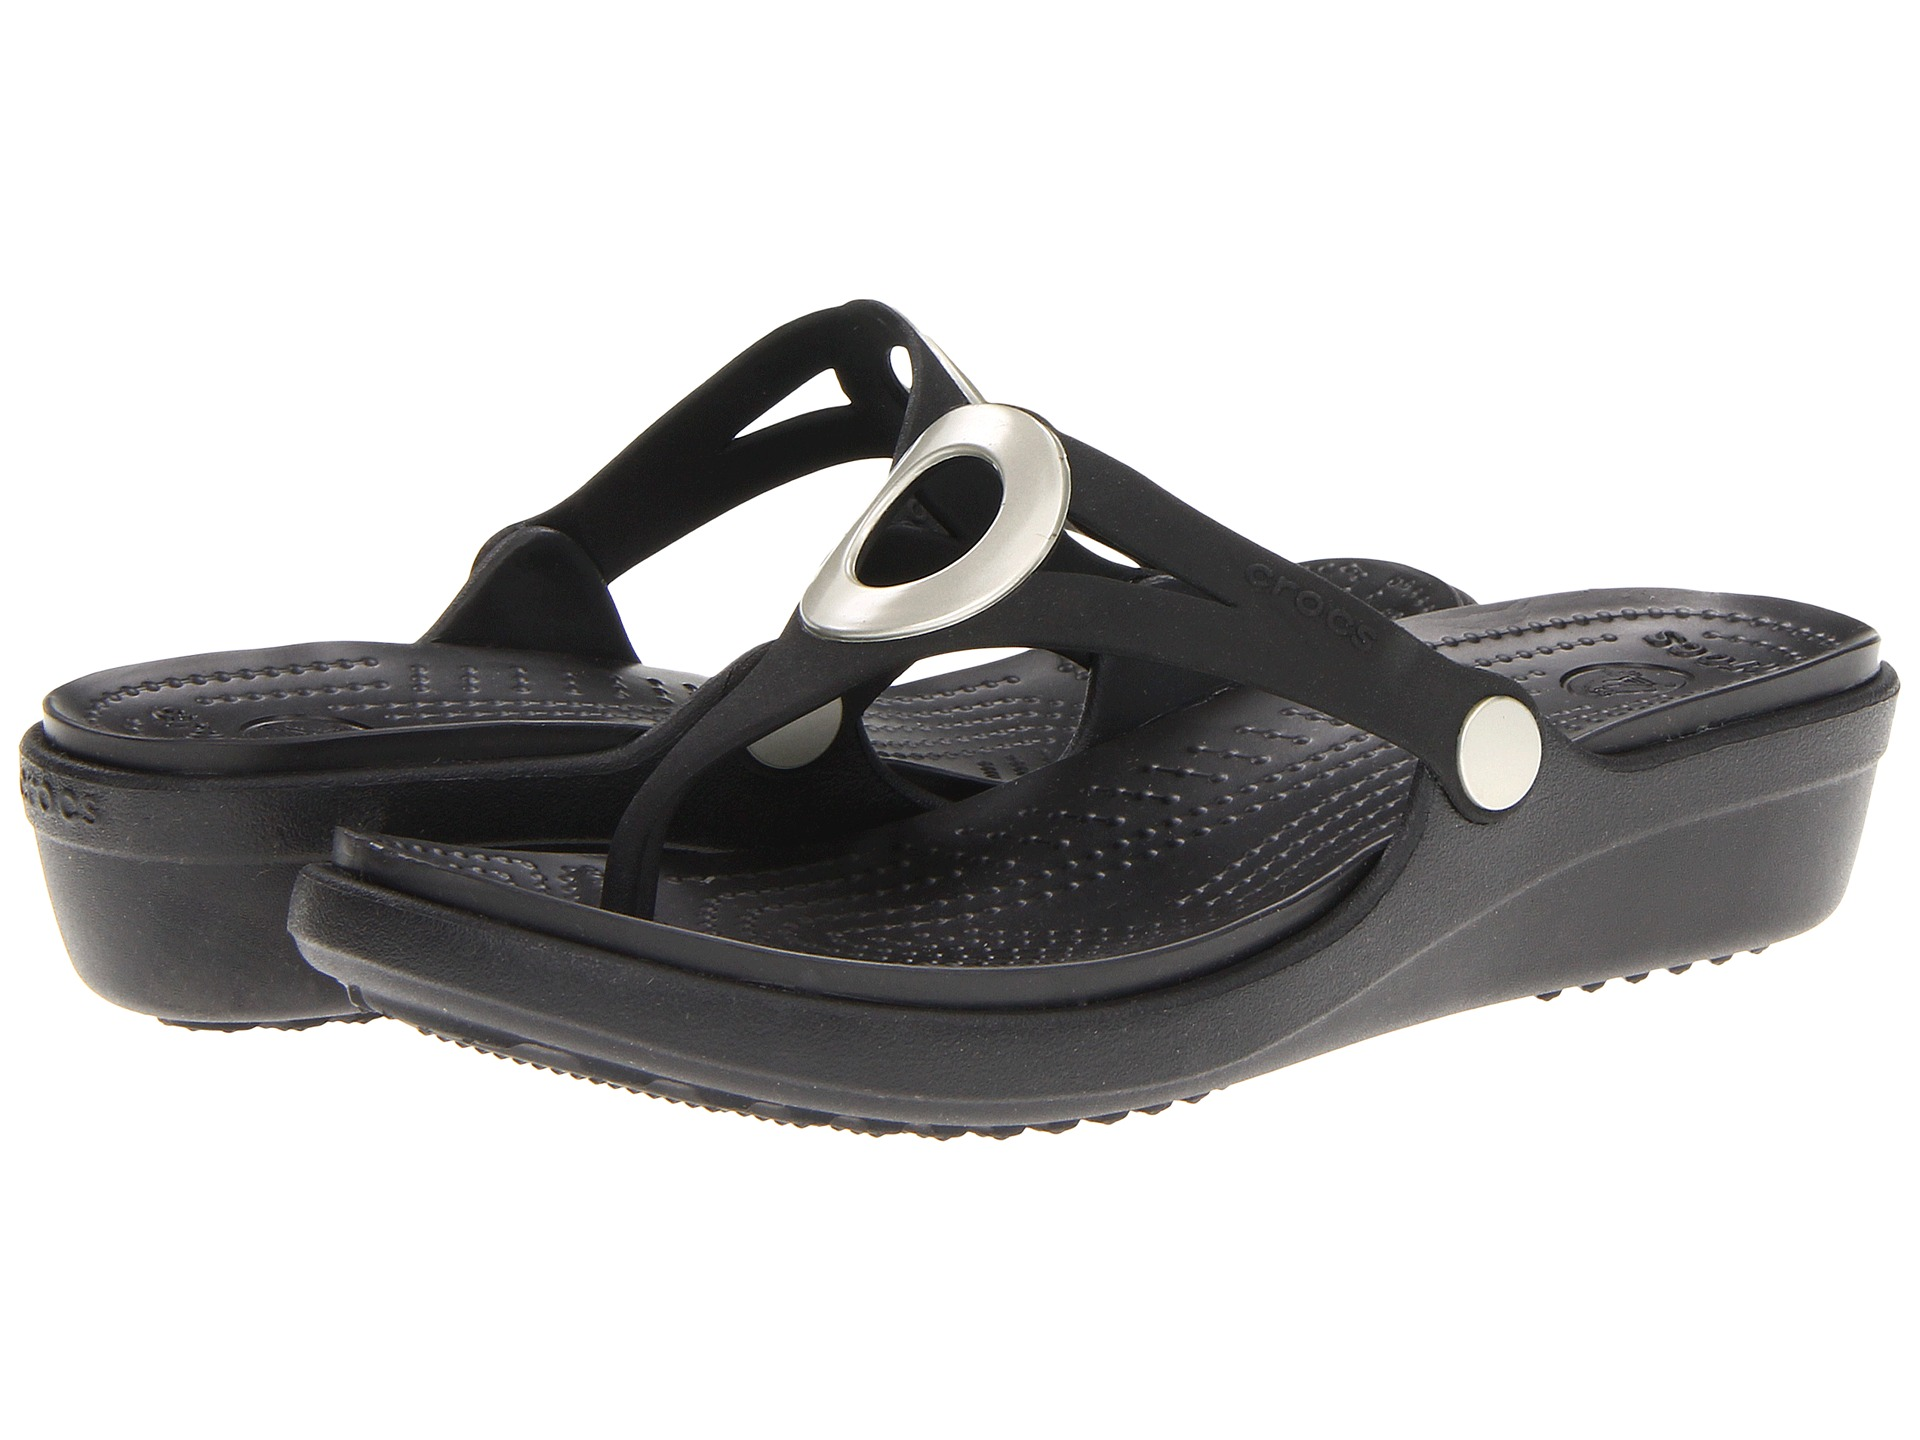 crocs sanrah wedge flip flop shipped free at zappos. Black Bedroom Furniture Sets. Home Design Ideas